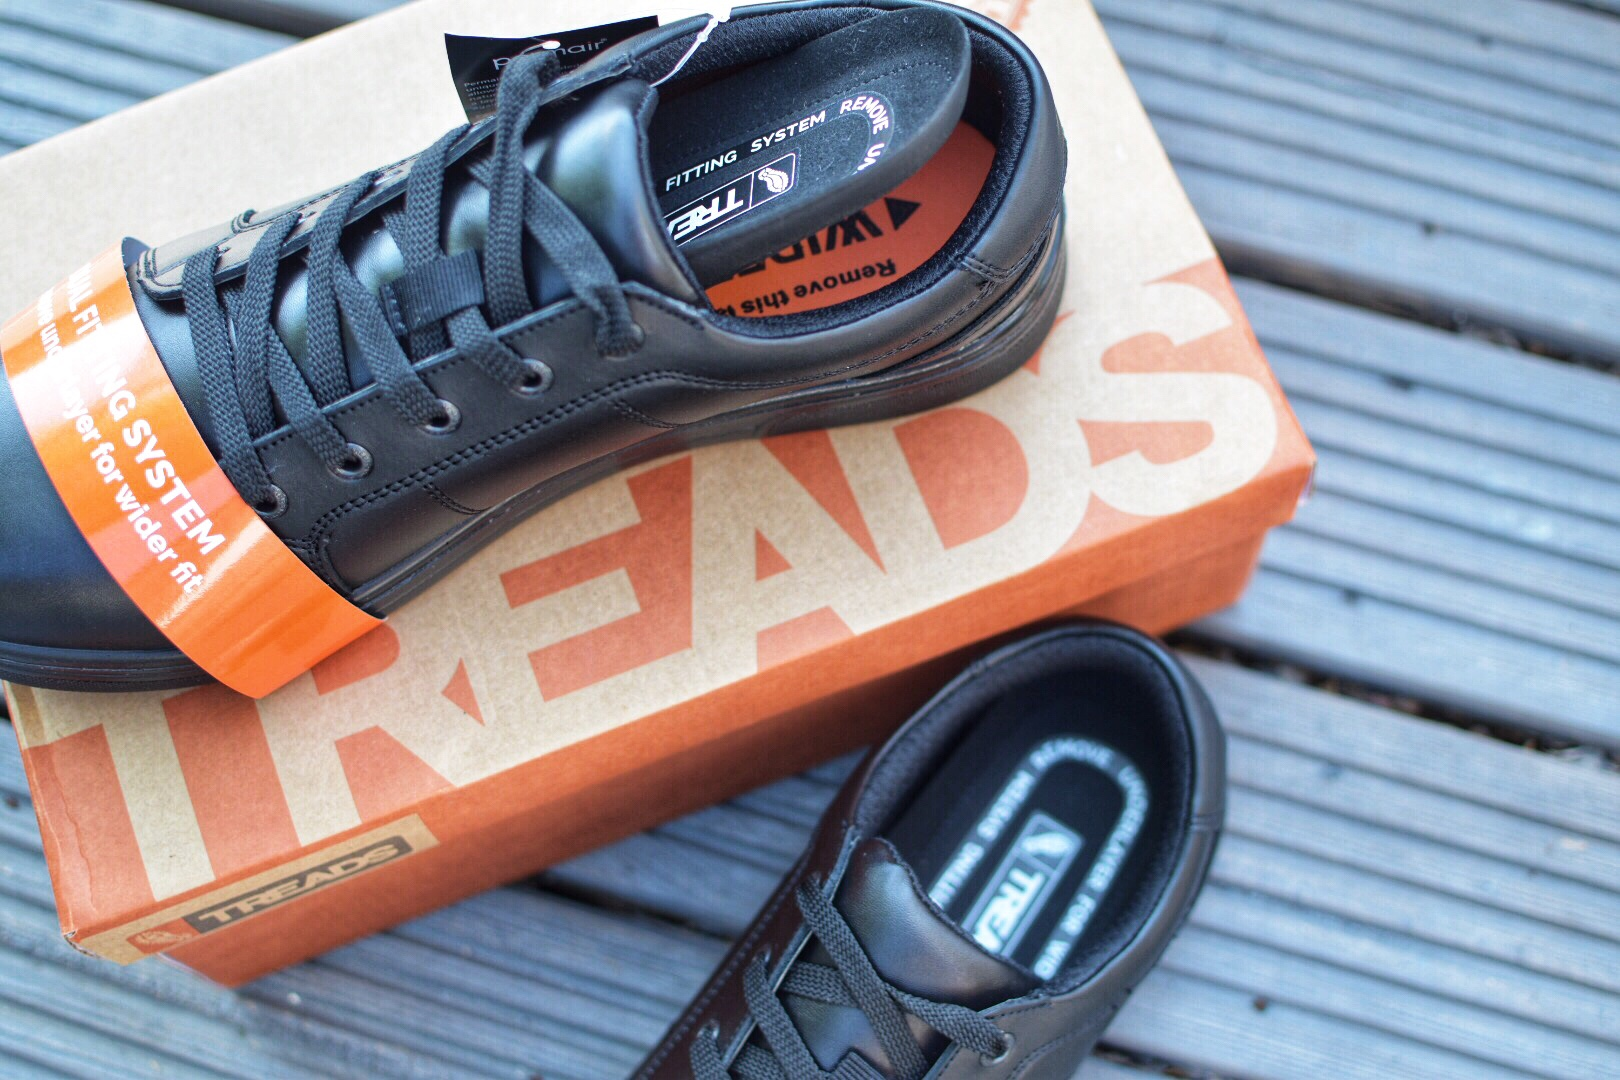 Treads School Shoes come with a dual fit insole and promise to be guarantee for 12 months